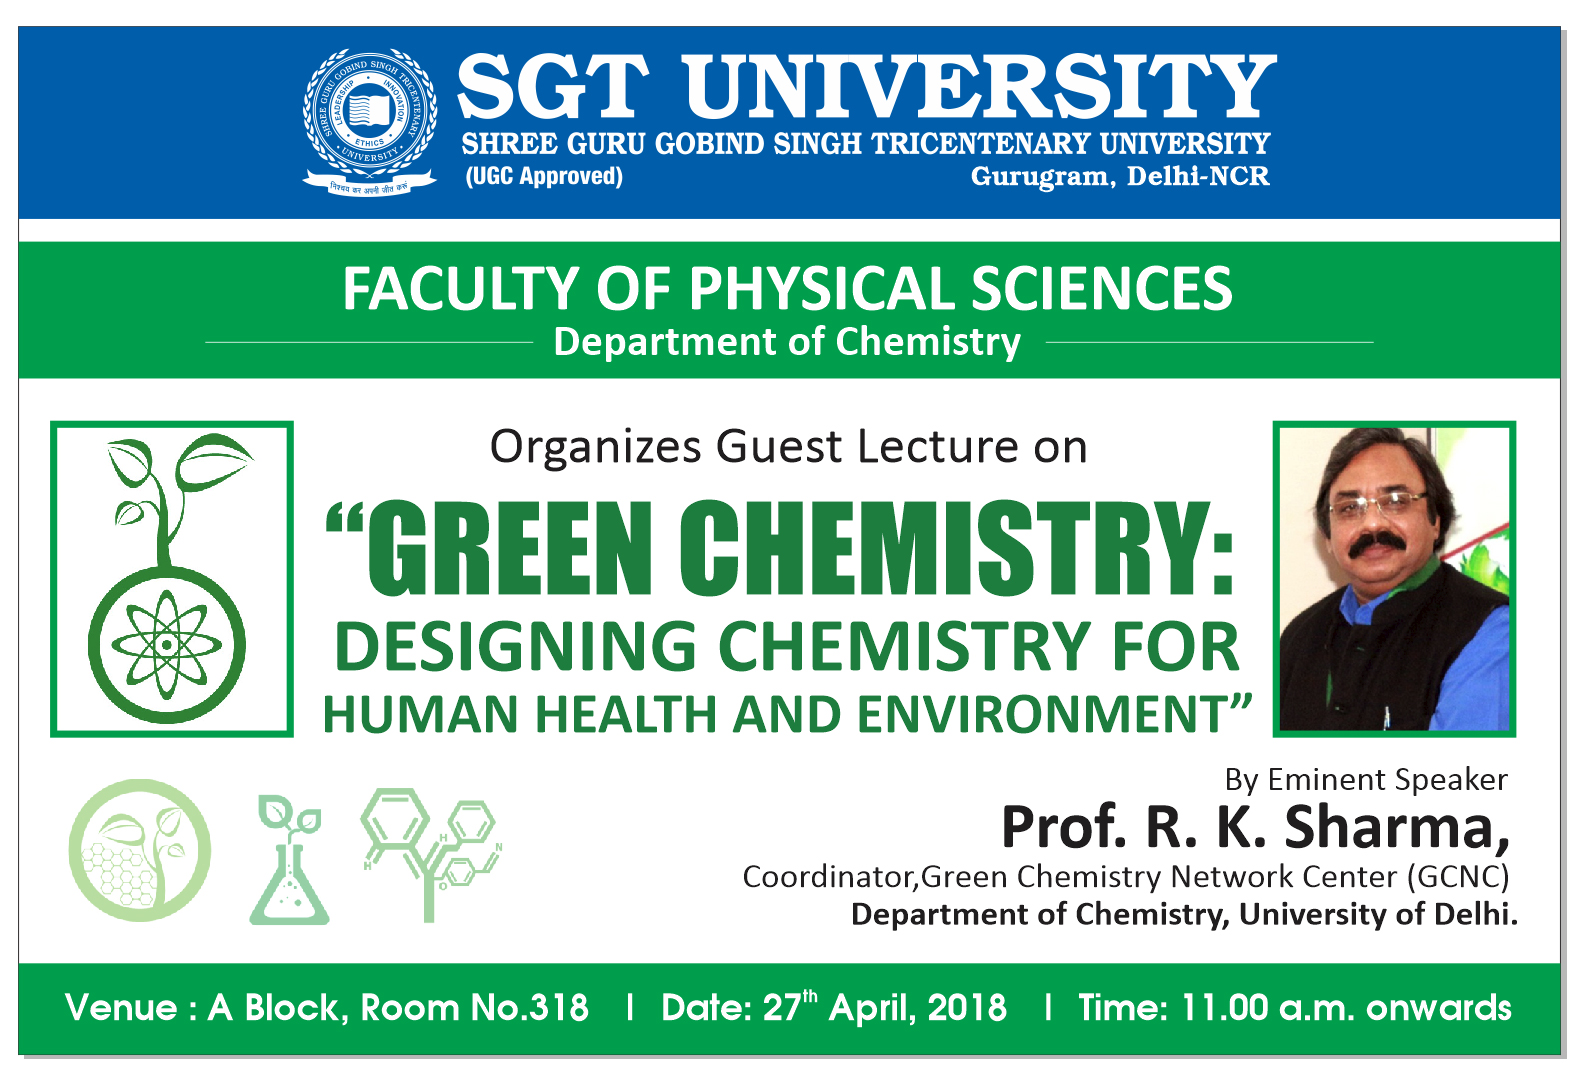 Green Chemistry: Designing Chemistry for Human Health and Environment